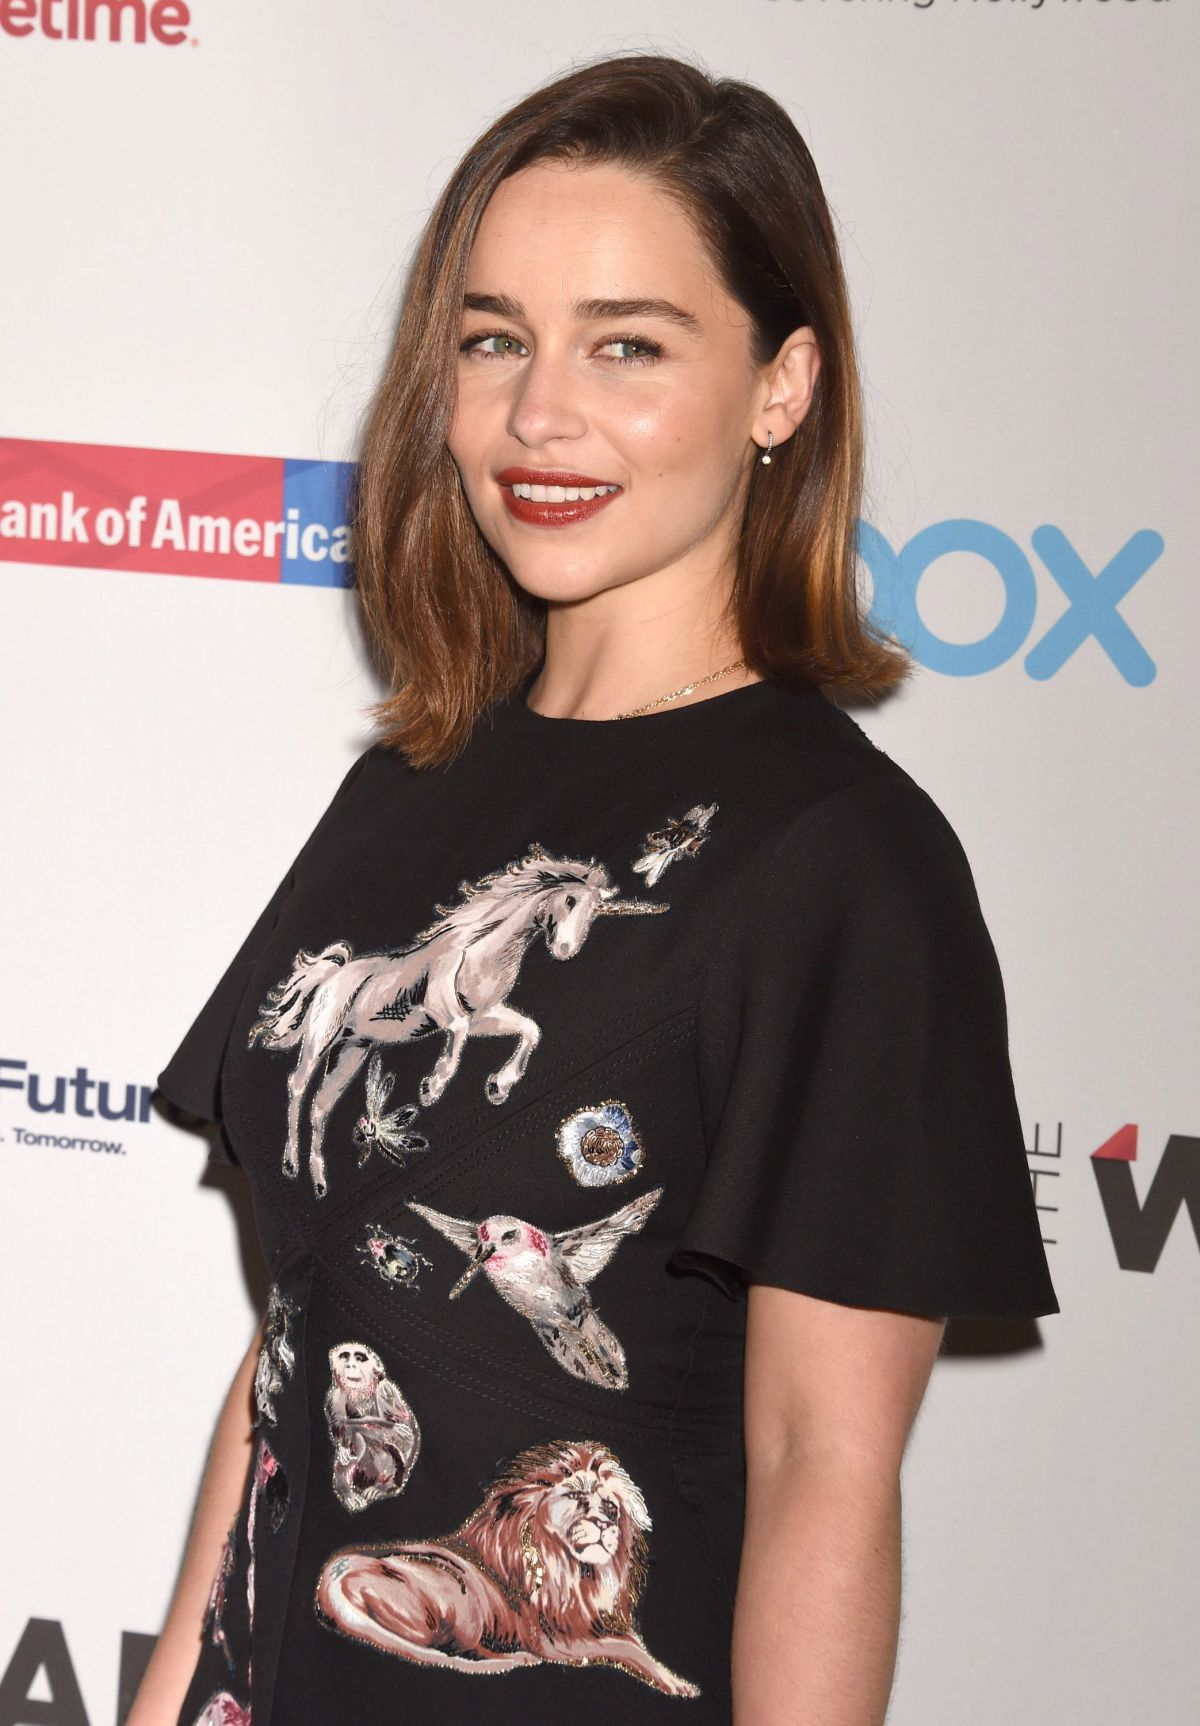 EMILIA CLARKE at Thewrap